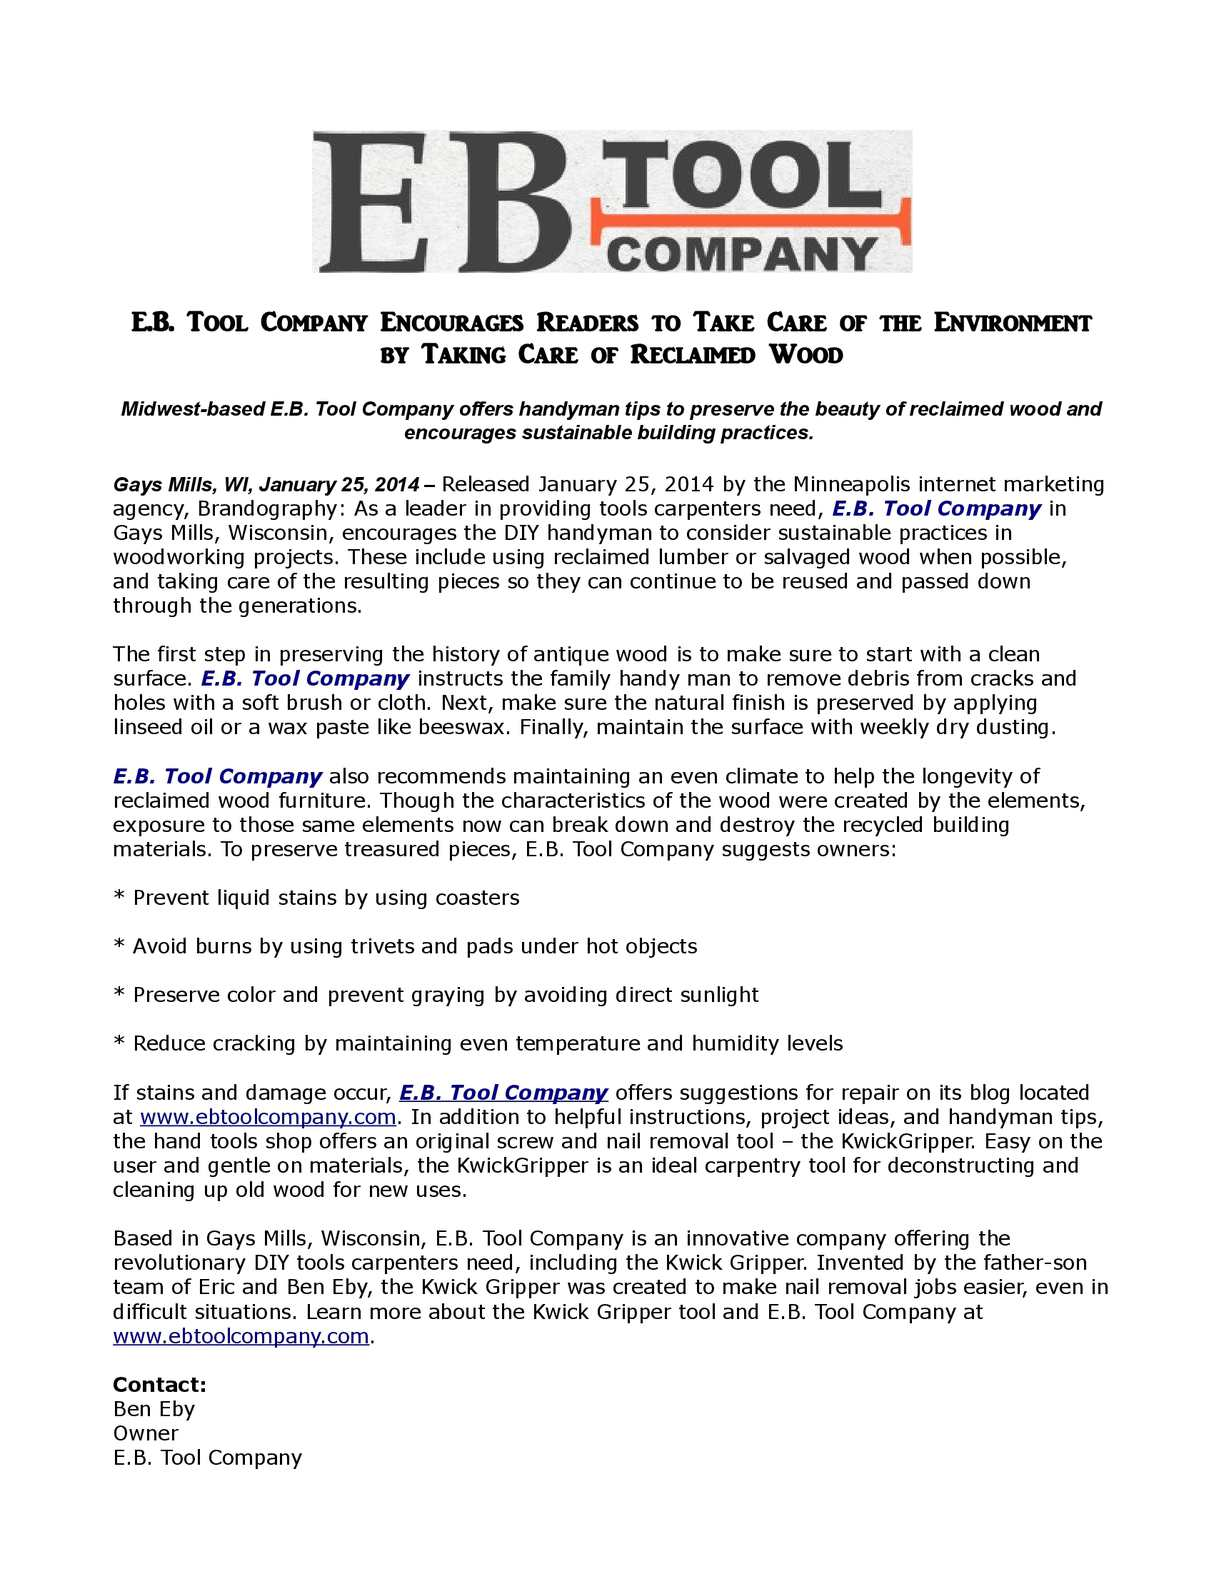 e b tool company encourages readers